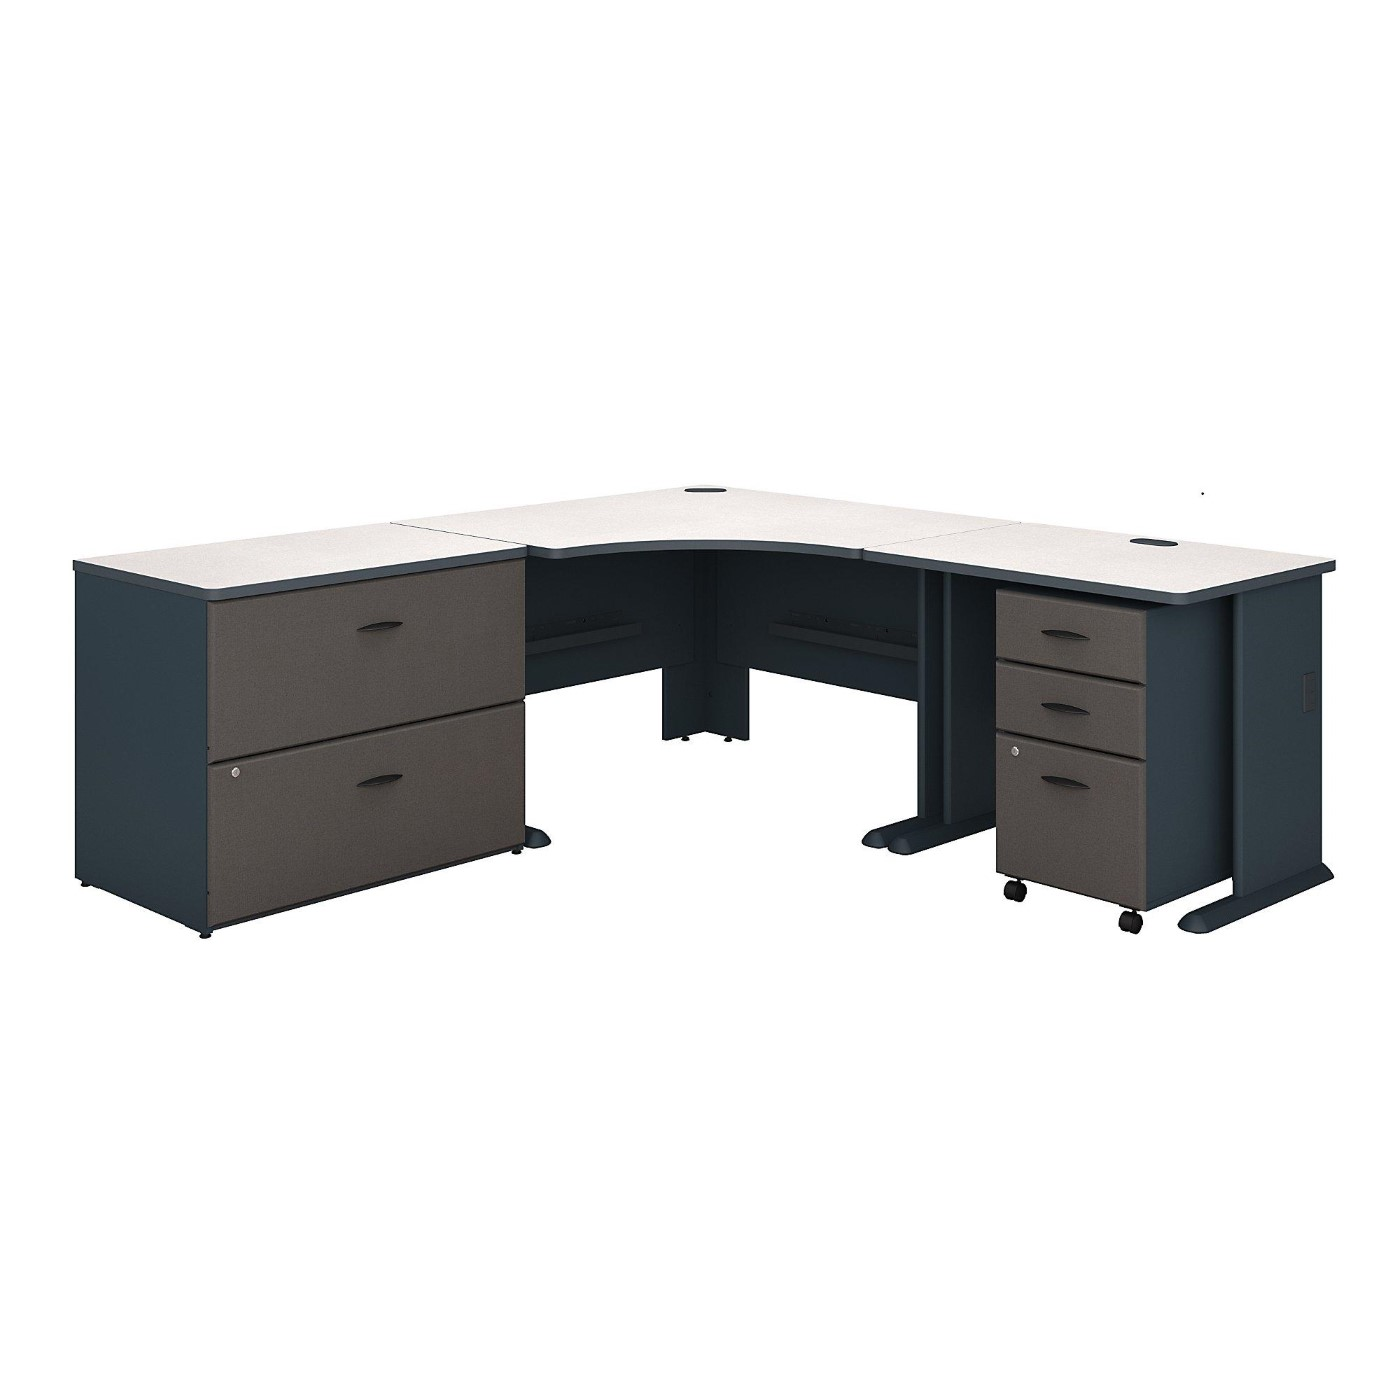 <font color=#c60><b>BUSH BUSINESS FURNITURE SERIES A 48W CORNER DESK WITH 36W RETURN AND FILE CABINETS. FREE SHIPPING</font></b></font>